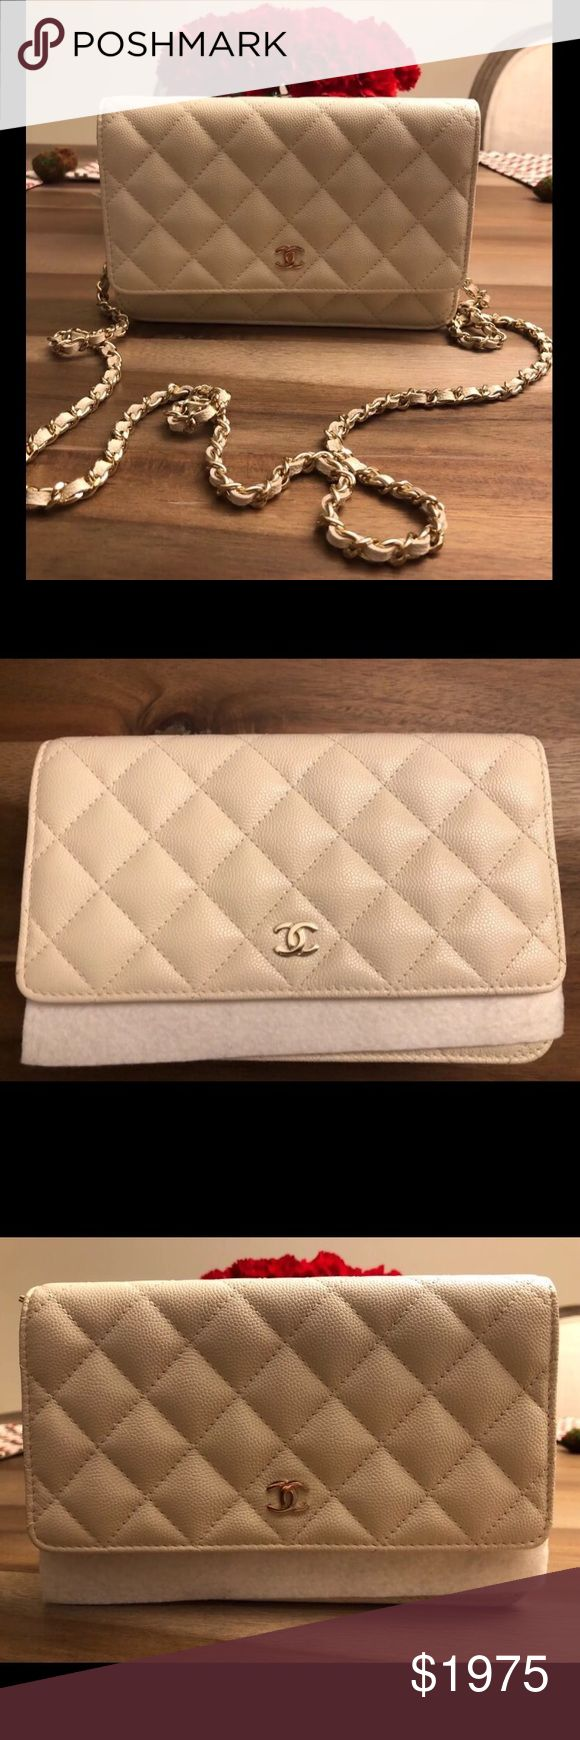 """CHANEL CAVIAR WALLET ON CHAIN WOC WHITE GOLD HW CHANEL CAVIAR LEATHER WALLET ON CHAIN WOC WHITE WITH GOLD HARDWARE   MEASURES: 7.5""""L x 5""""H x 2""""D STRAP DROP: 24""""  New Condition; Bag comes in original packaging with box, dustbag, and authenticity card.   NO TRADES.  PRICE ON POSH IS FIRM.  SERIOUS BUYERS ONLY!!! CHANEL Bags Crossbody Bags"""